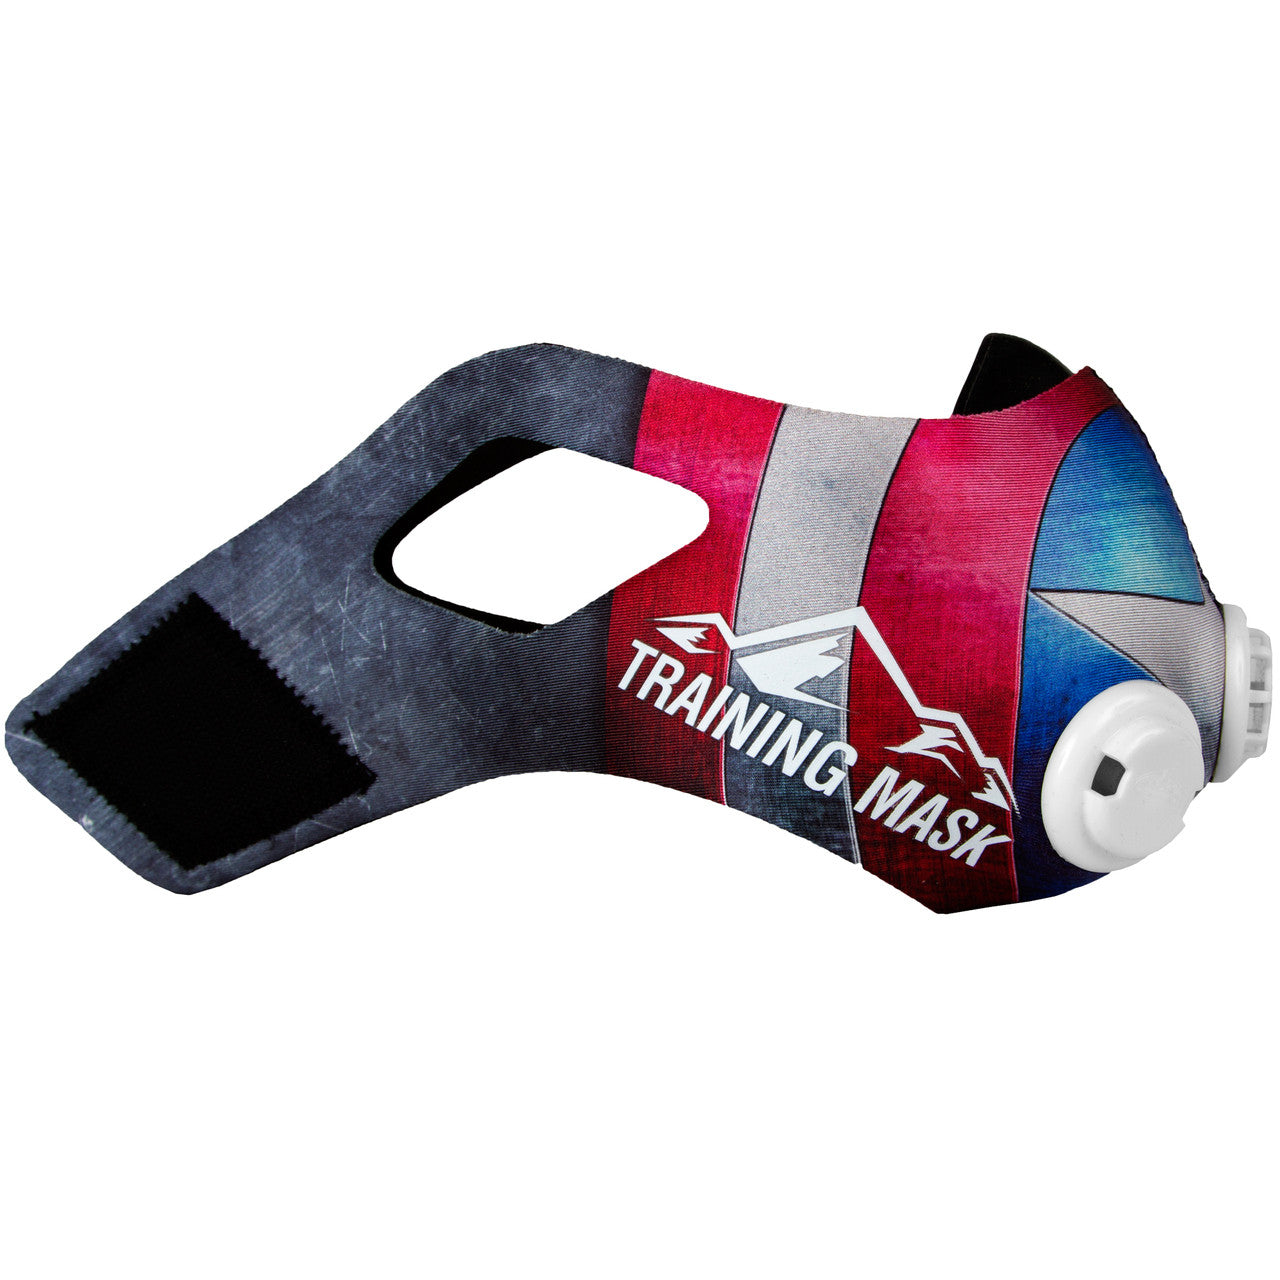 Training Mask 2.0 Merica Sleeve